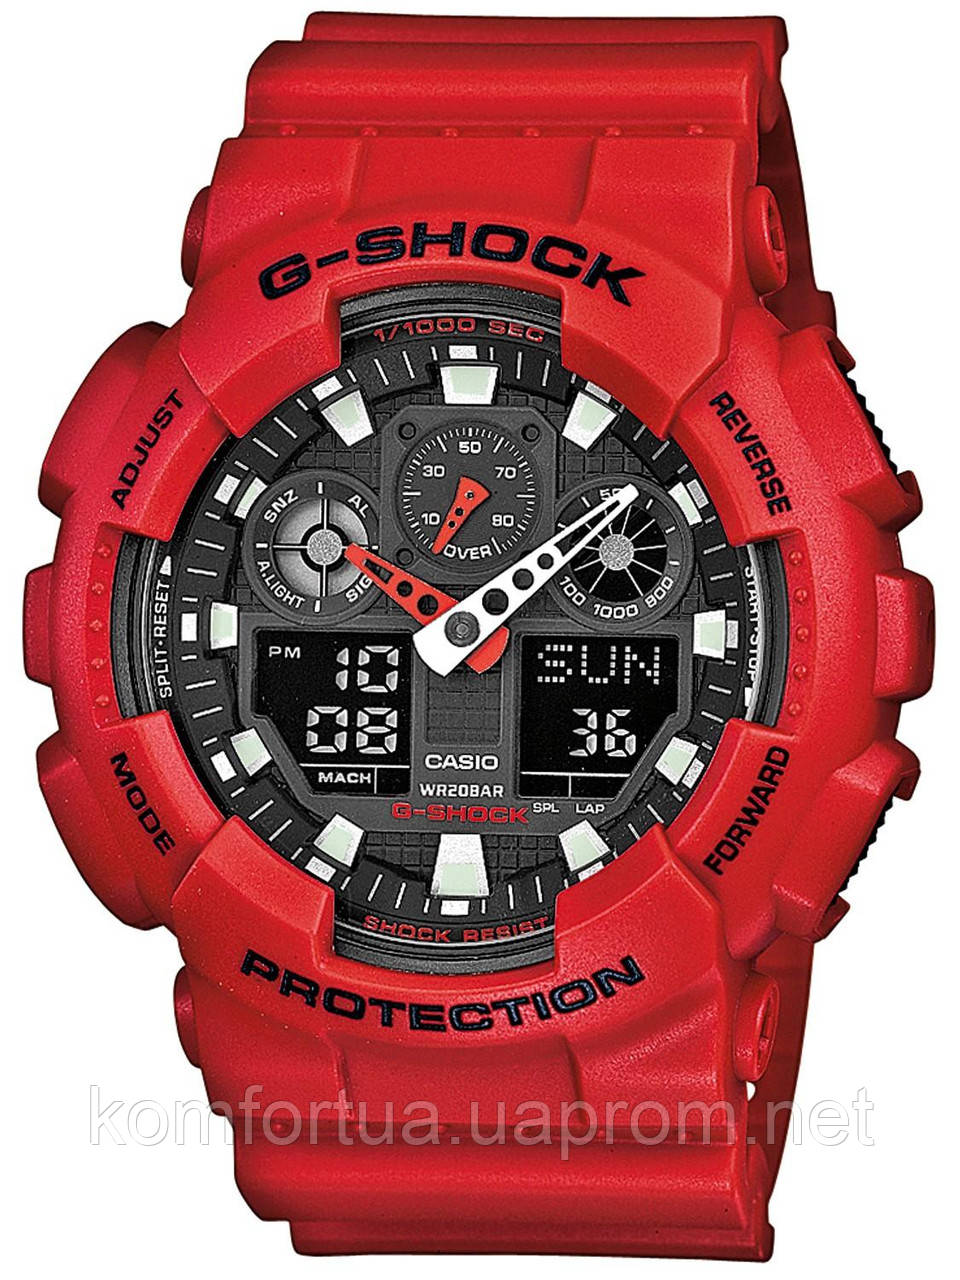 Часы CASIO G-SHOCK GA-100B-4AER